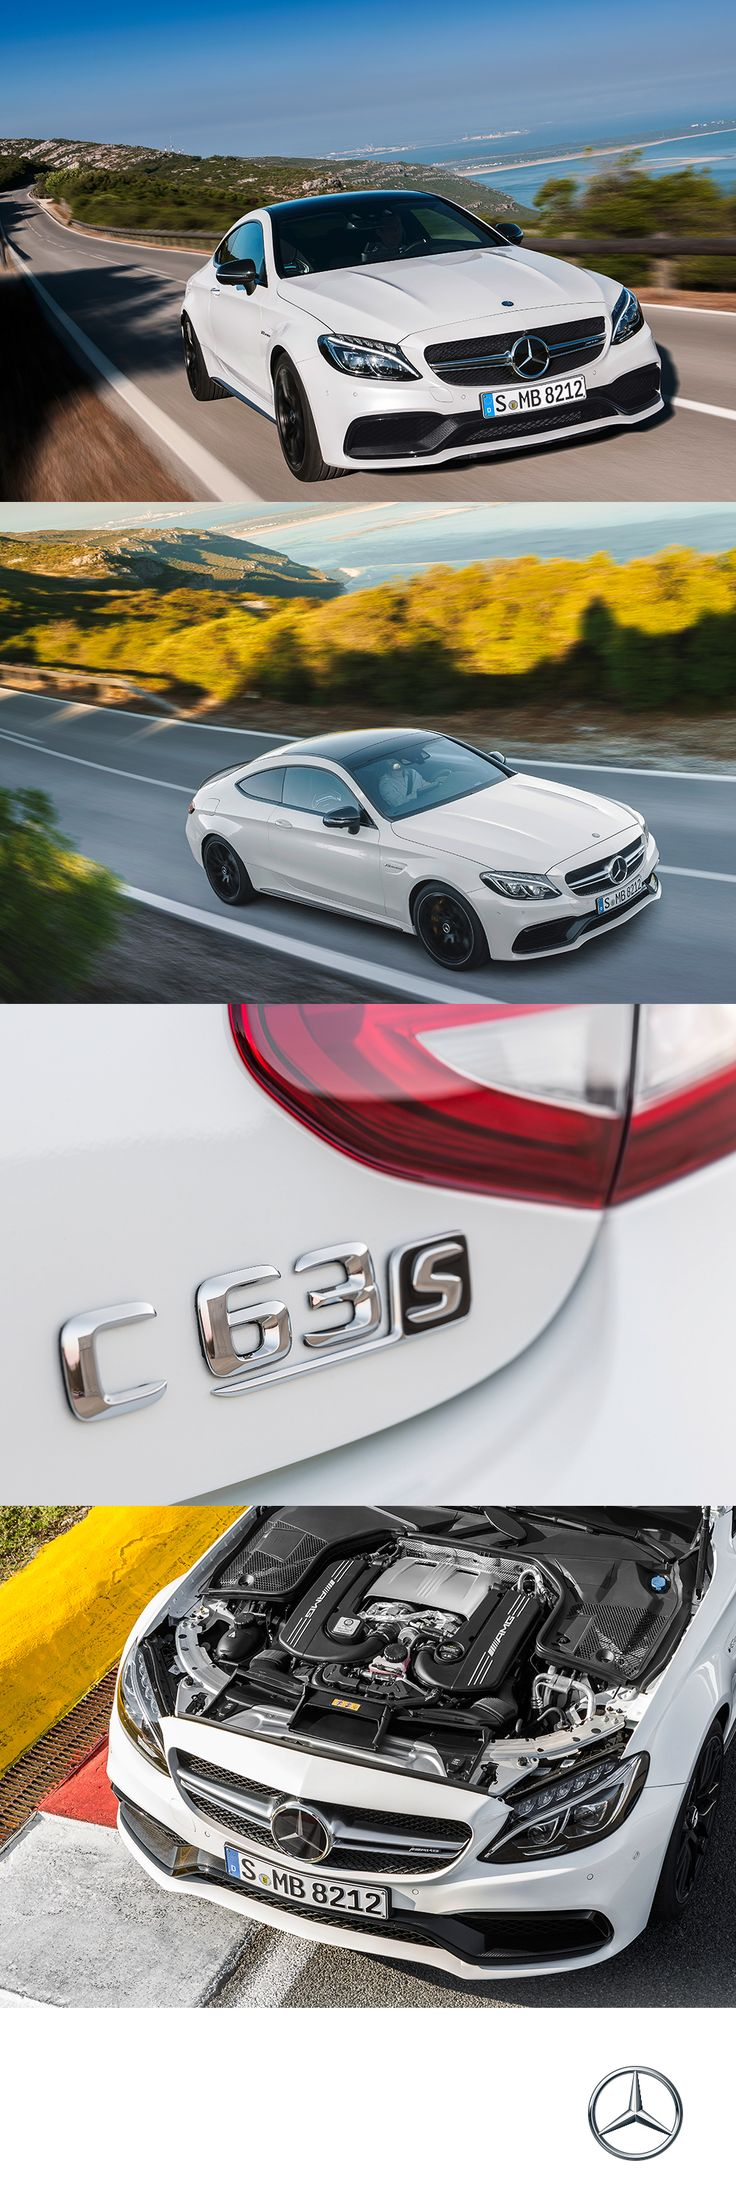 1302 best dream cars images on pinterest dream cars fancy cars the new 2017 mercedes amg c63 s coupe offers unequivocal sport performance with just a fandeluxe Gallery